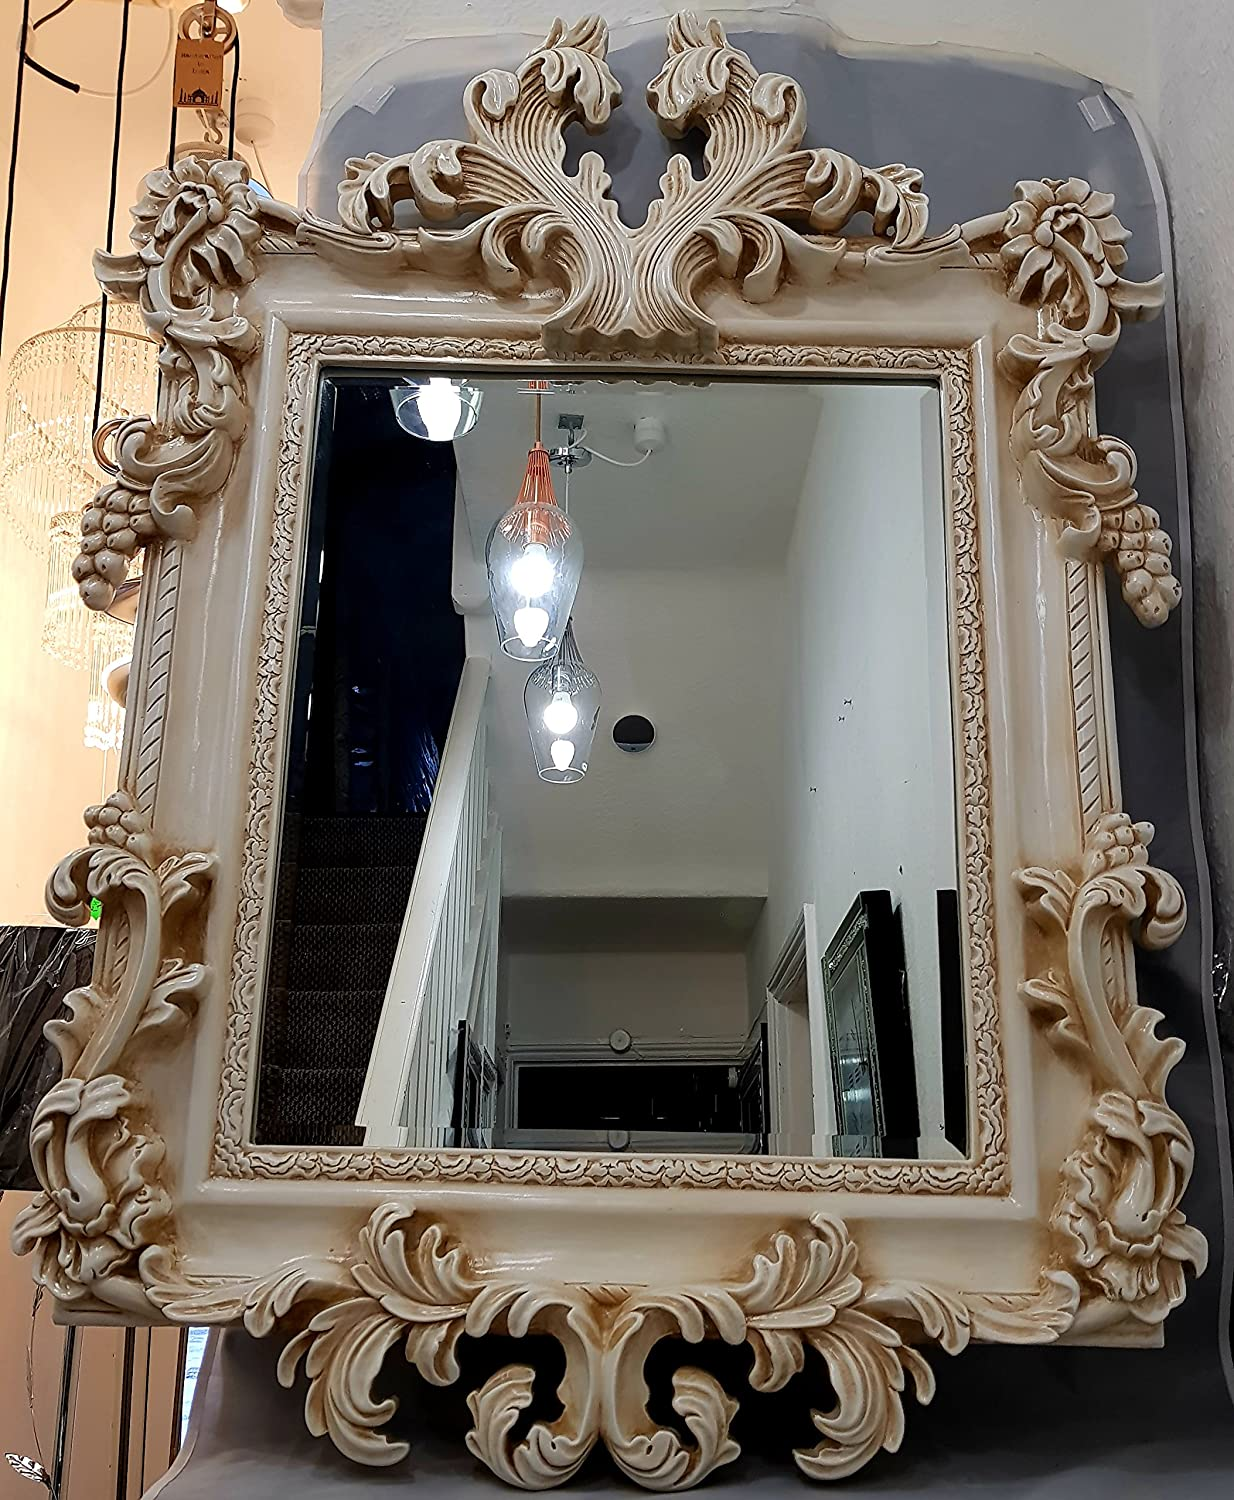 Mh Antique Replica Traditional French Style Large Ornate Wall Mirror In Cream Amazon Co Uk Kitchen Home